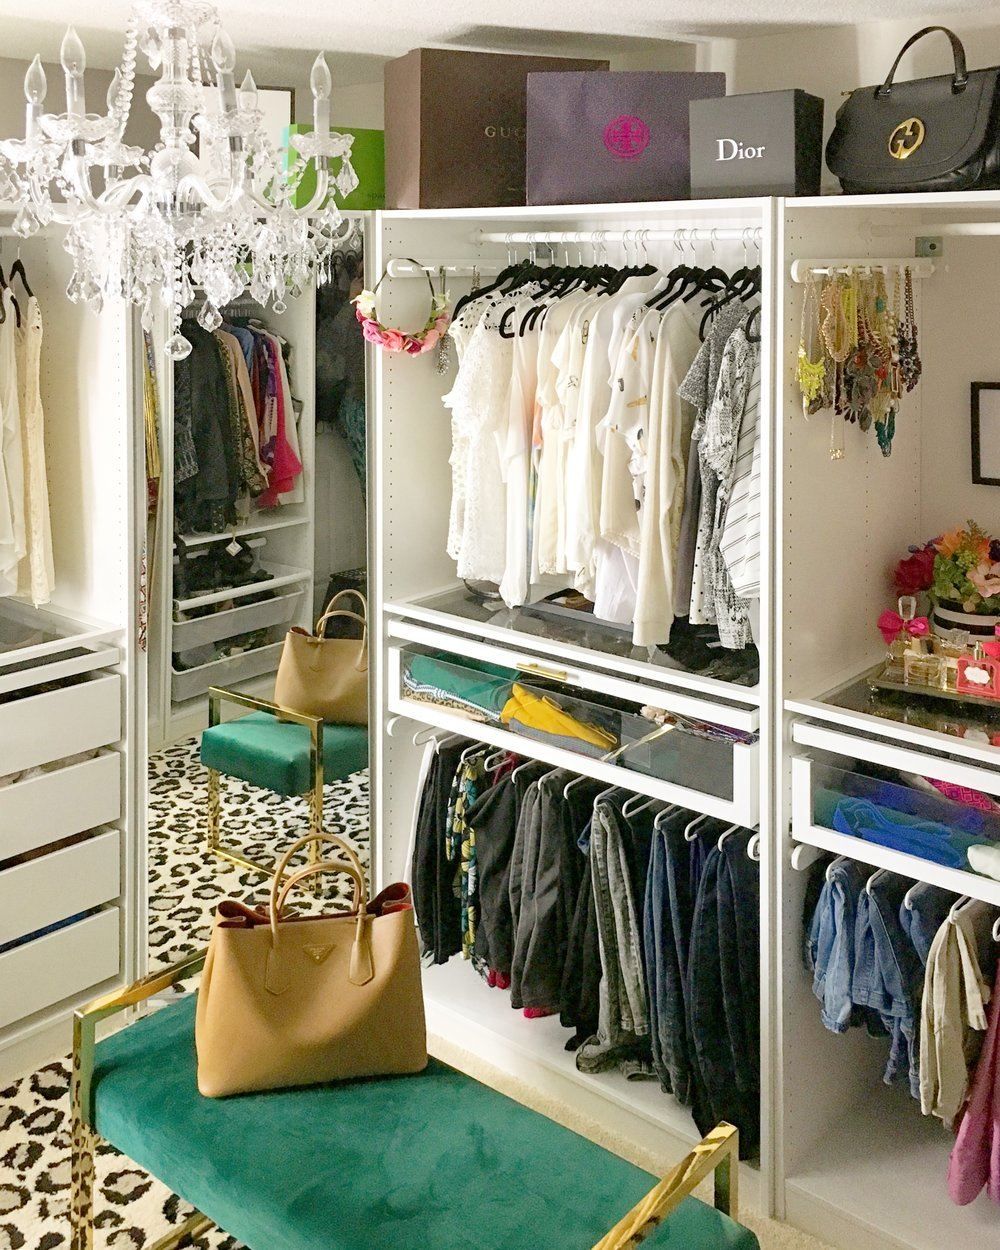 To Project Ultimate Room Glam Closet A Guide Vogue The Reveal — sChrtQd